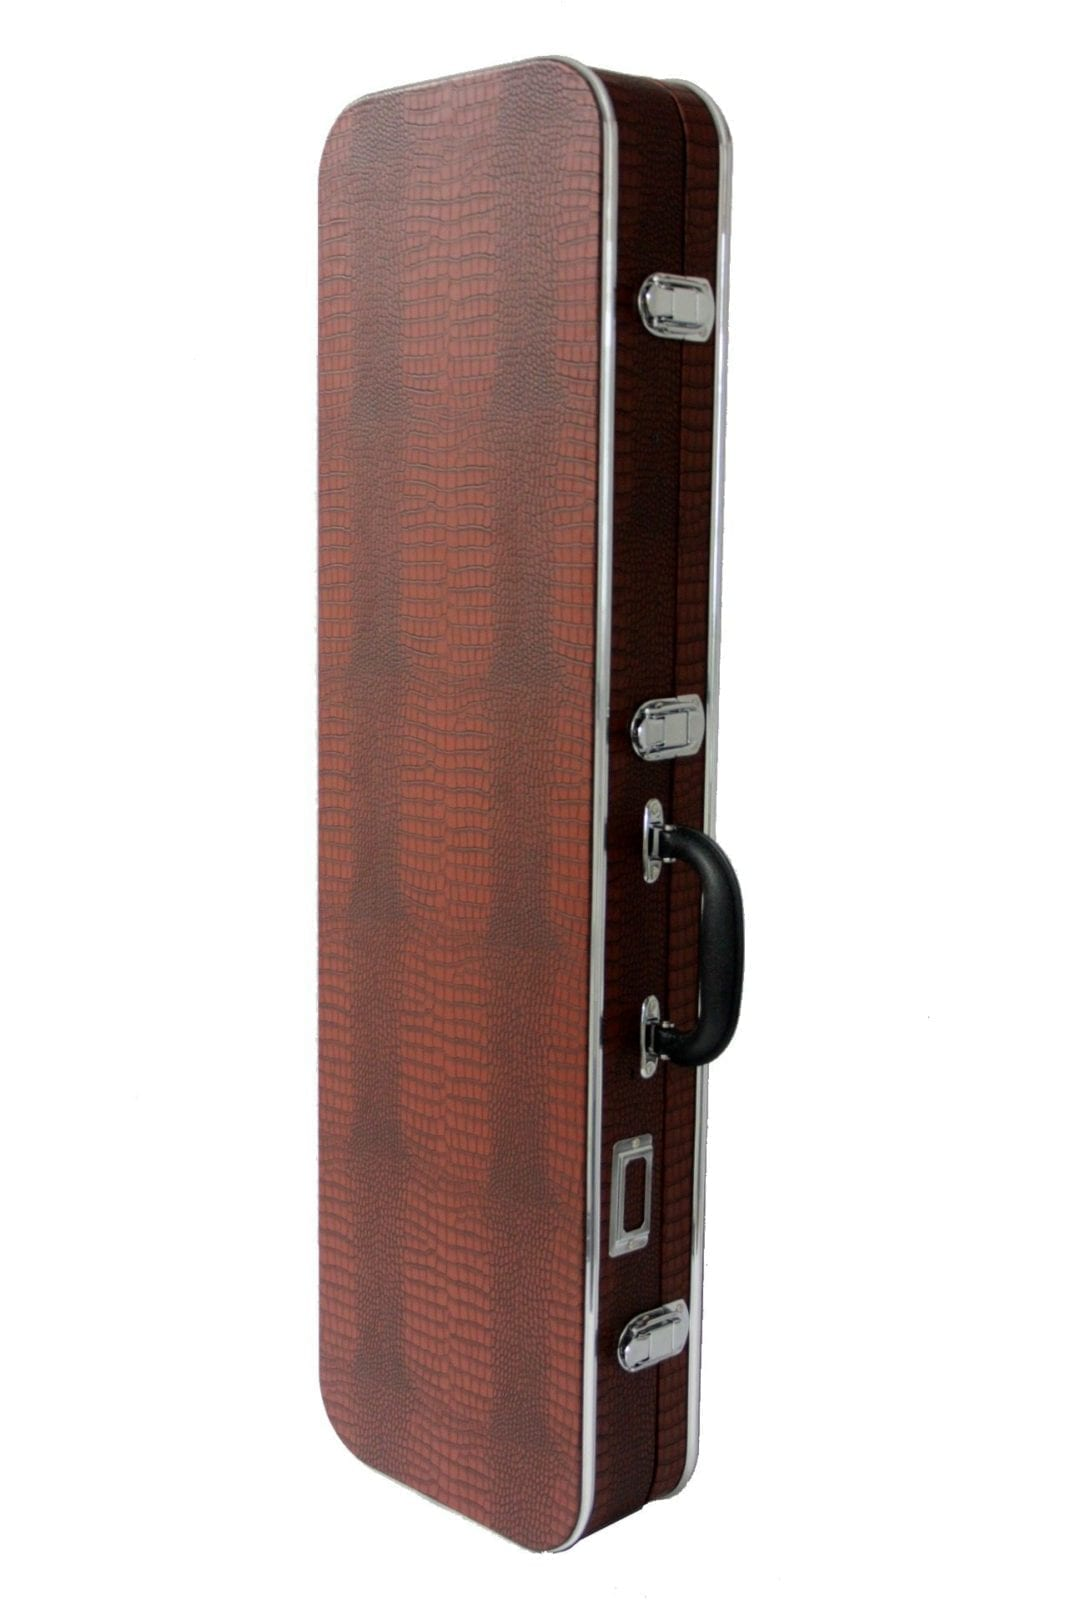 Sanshin hard case - Crocodile pattern / Brown